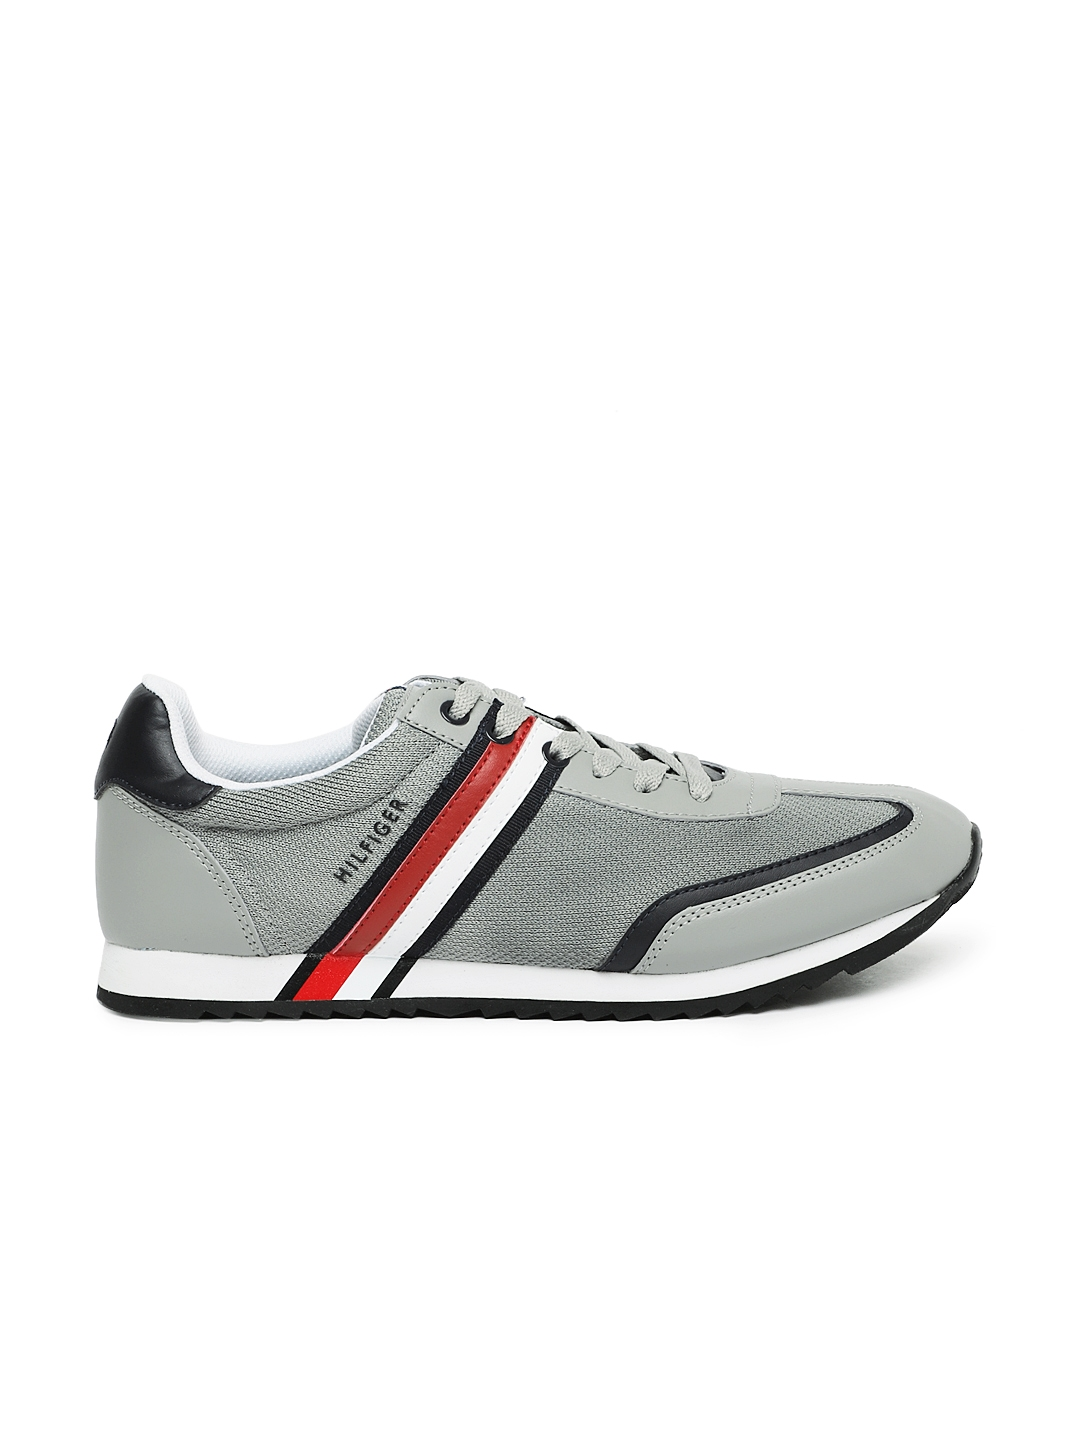 85b57a94c Buy Tommy Hilfiger Men Grey Sneakers - Casual Shoes for Men 5415596 ...